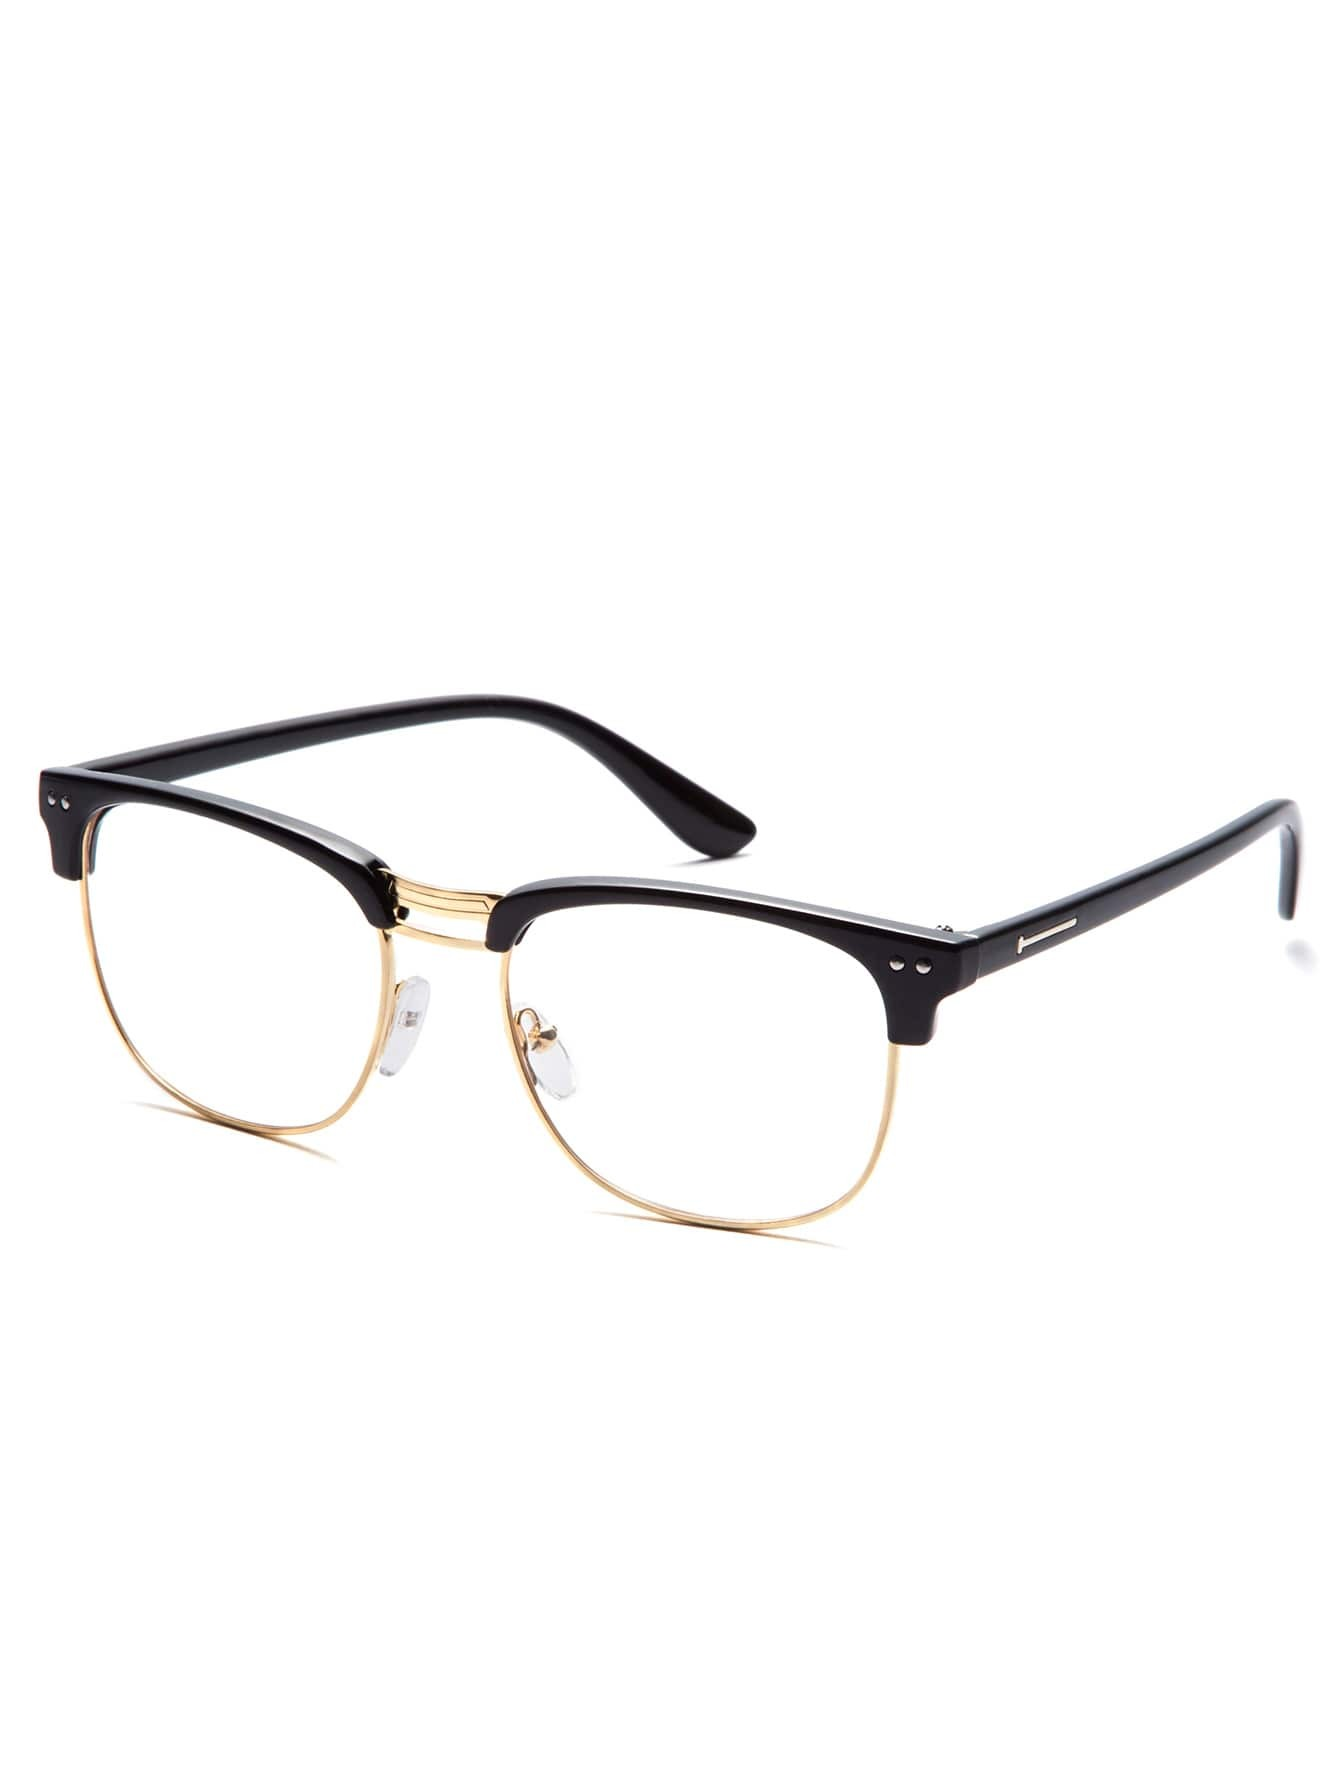 Black Frame Accessory Glasses : Black Open Frame Gold Trim Glasses